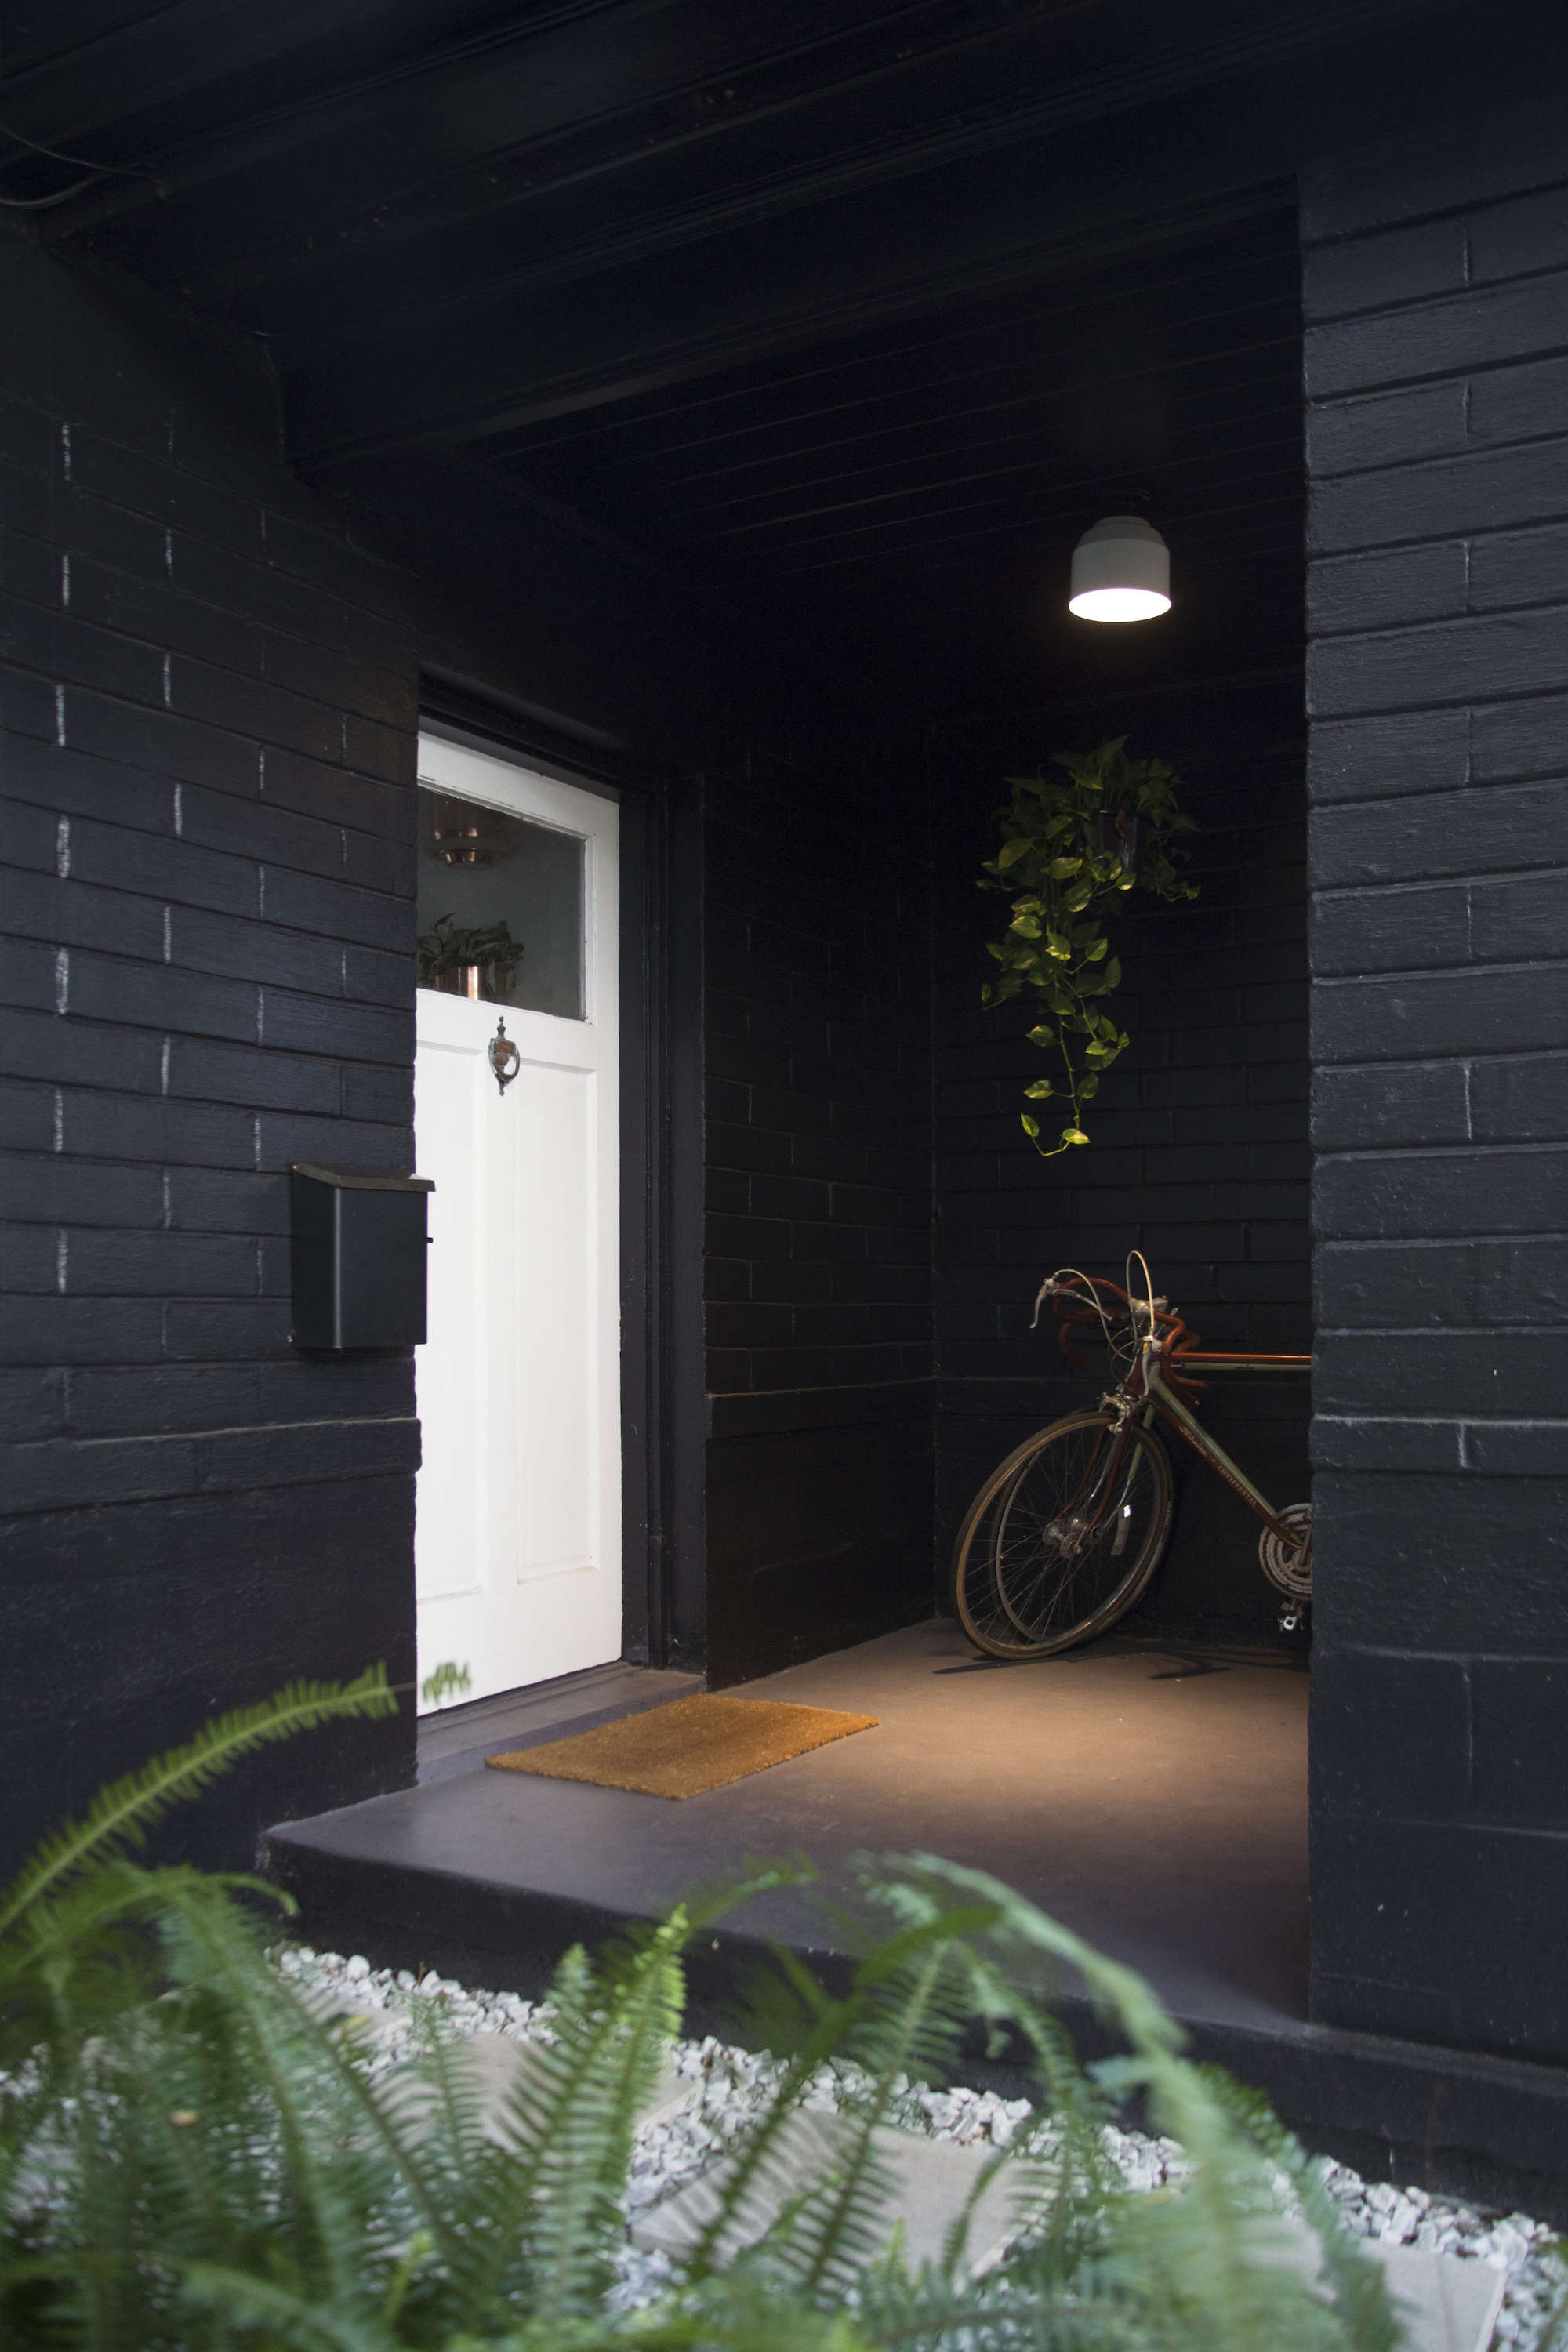 Browse the garden finished browse the garden before - Covered Entryway Florida Black Brick Painted House Bicycle